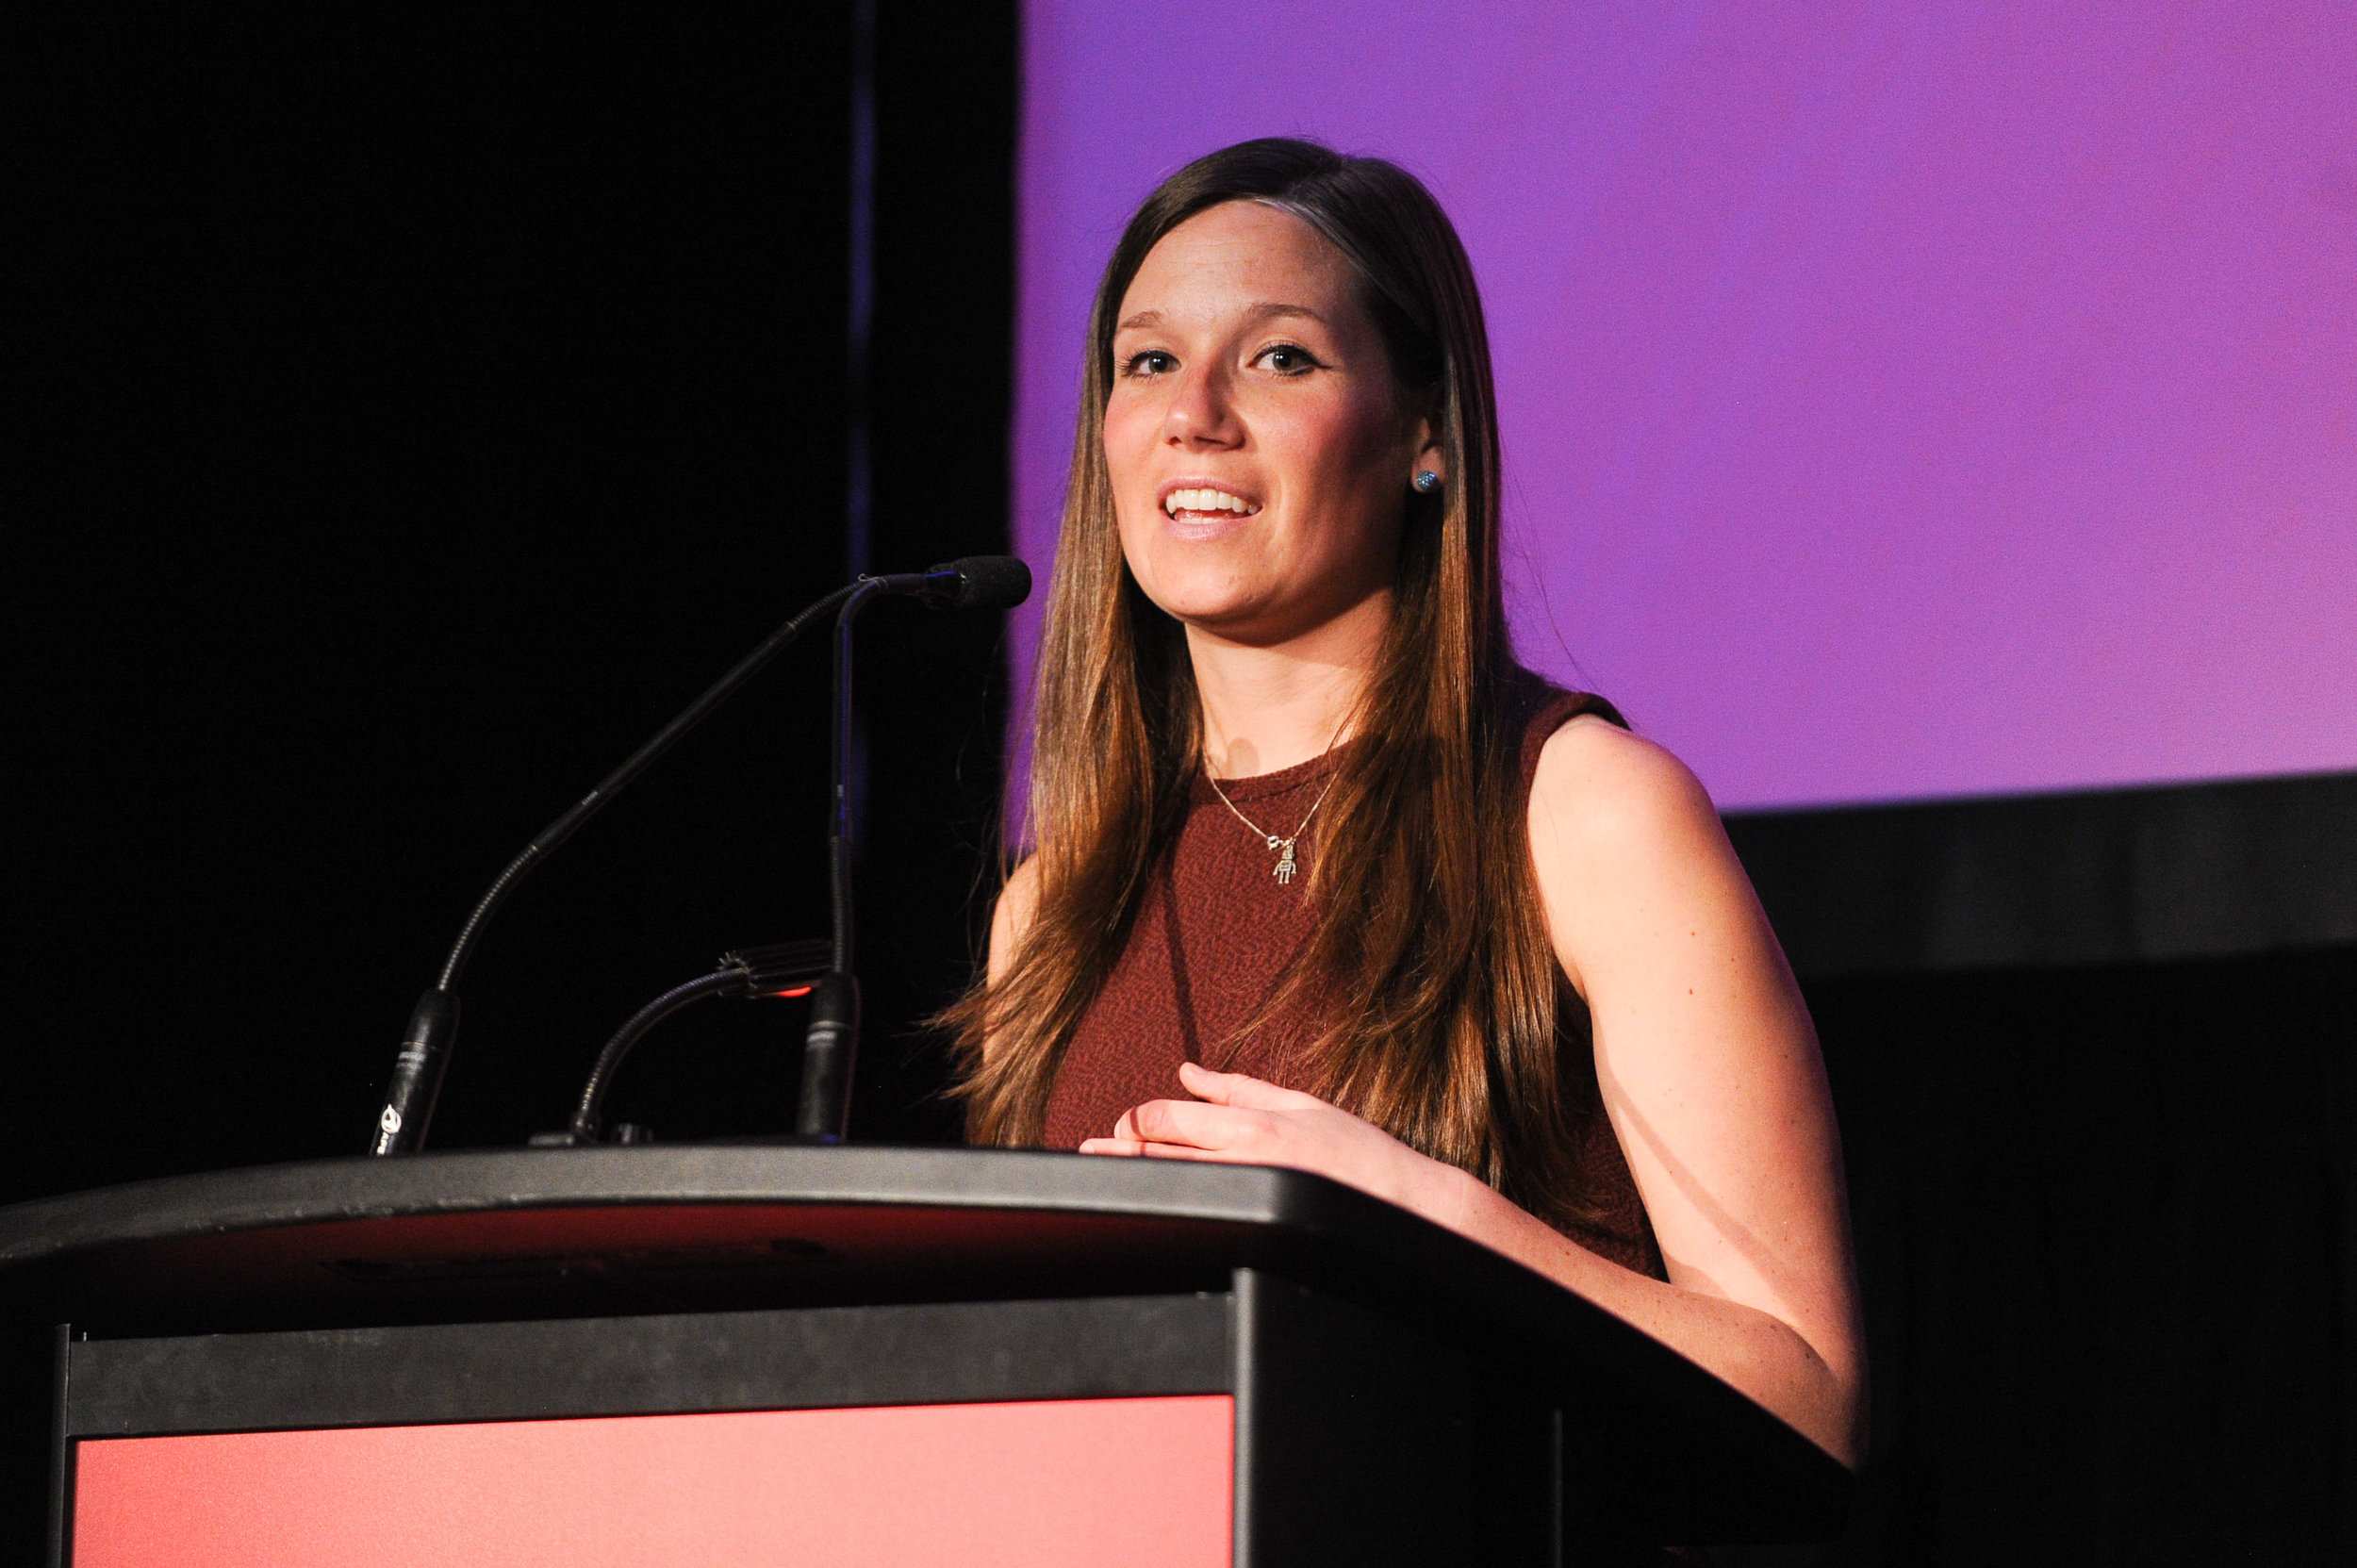 Natalie Panek | Rocket Scientist &Advocate for Women in Tech - The accomplished Natalie Panek inspired with Lynn Sherr's Sally Ride, and delivered an impassioned message about the value of encouraging girls in science.